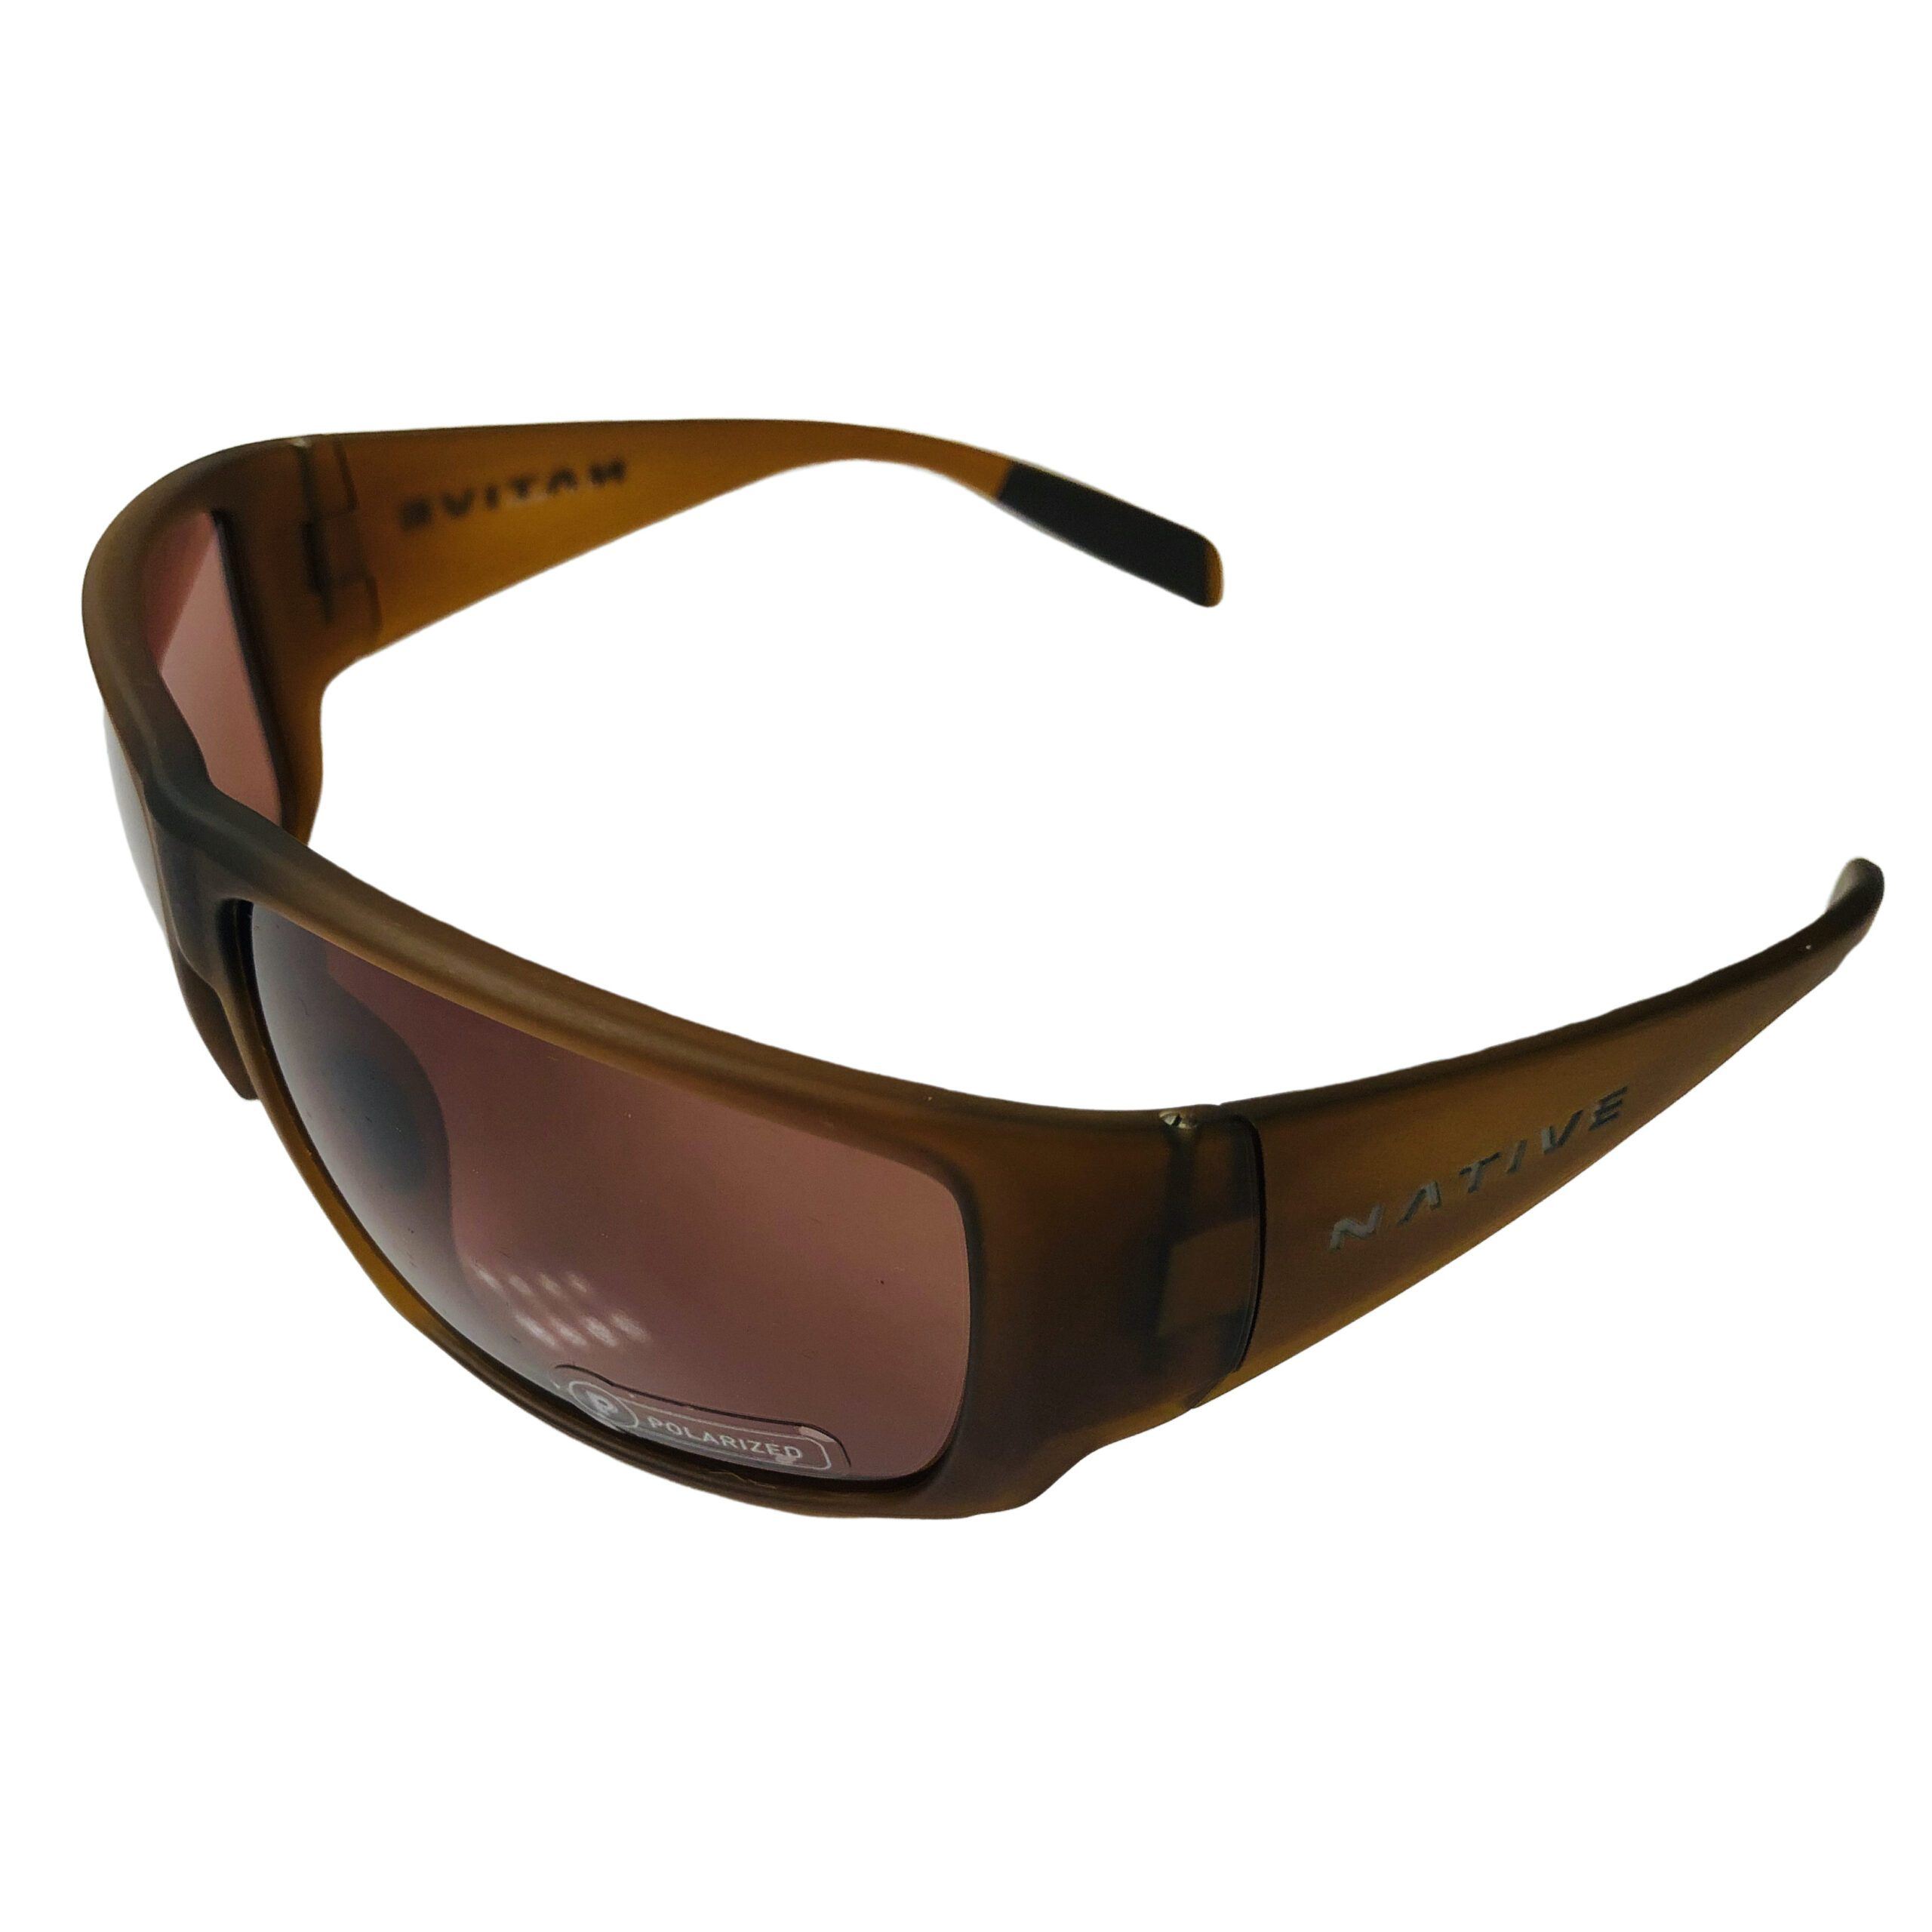 Native Eyewear Sightcaster Sunglasses - Matte Brown Crystal POLARIZED Brown